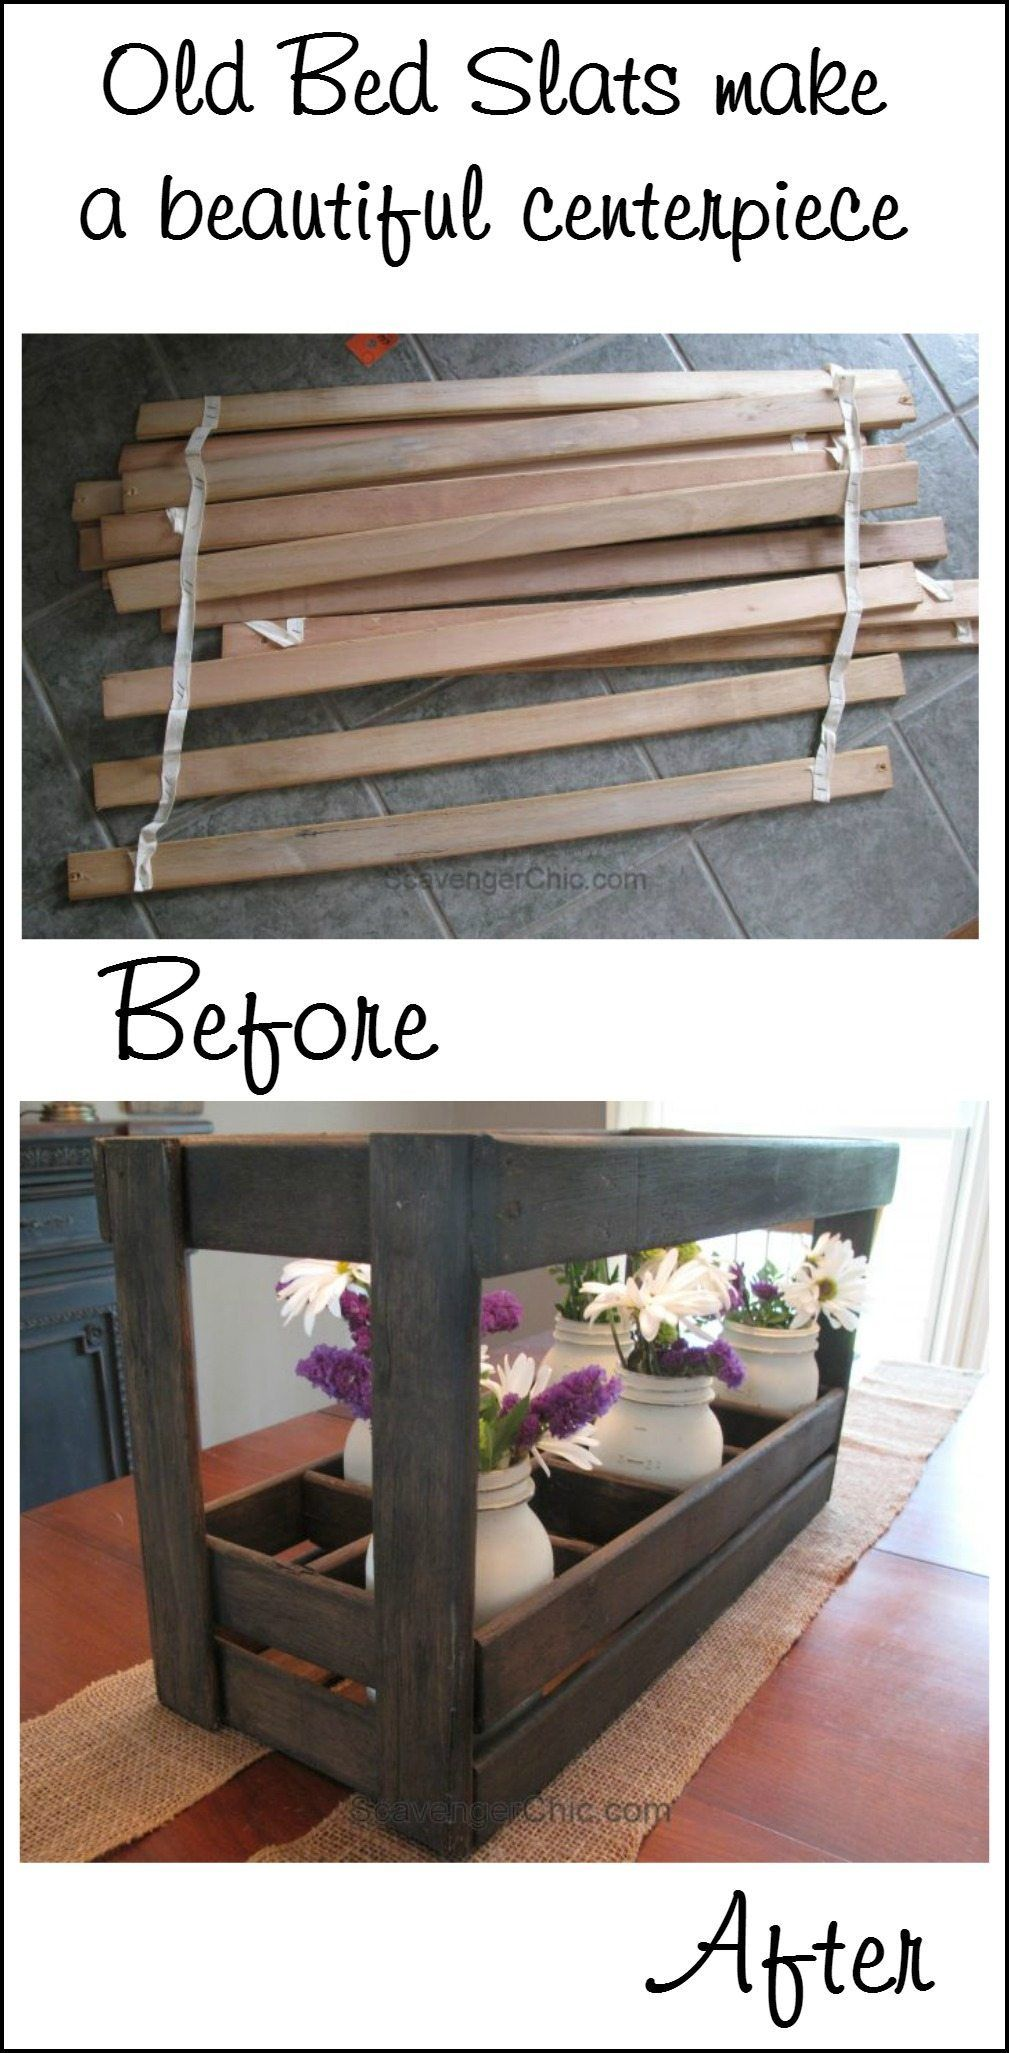 Wooden Caddy from Bed Slats My Repurposed Life® Rescue